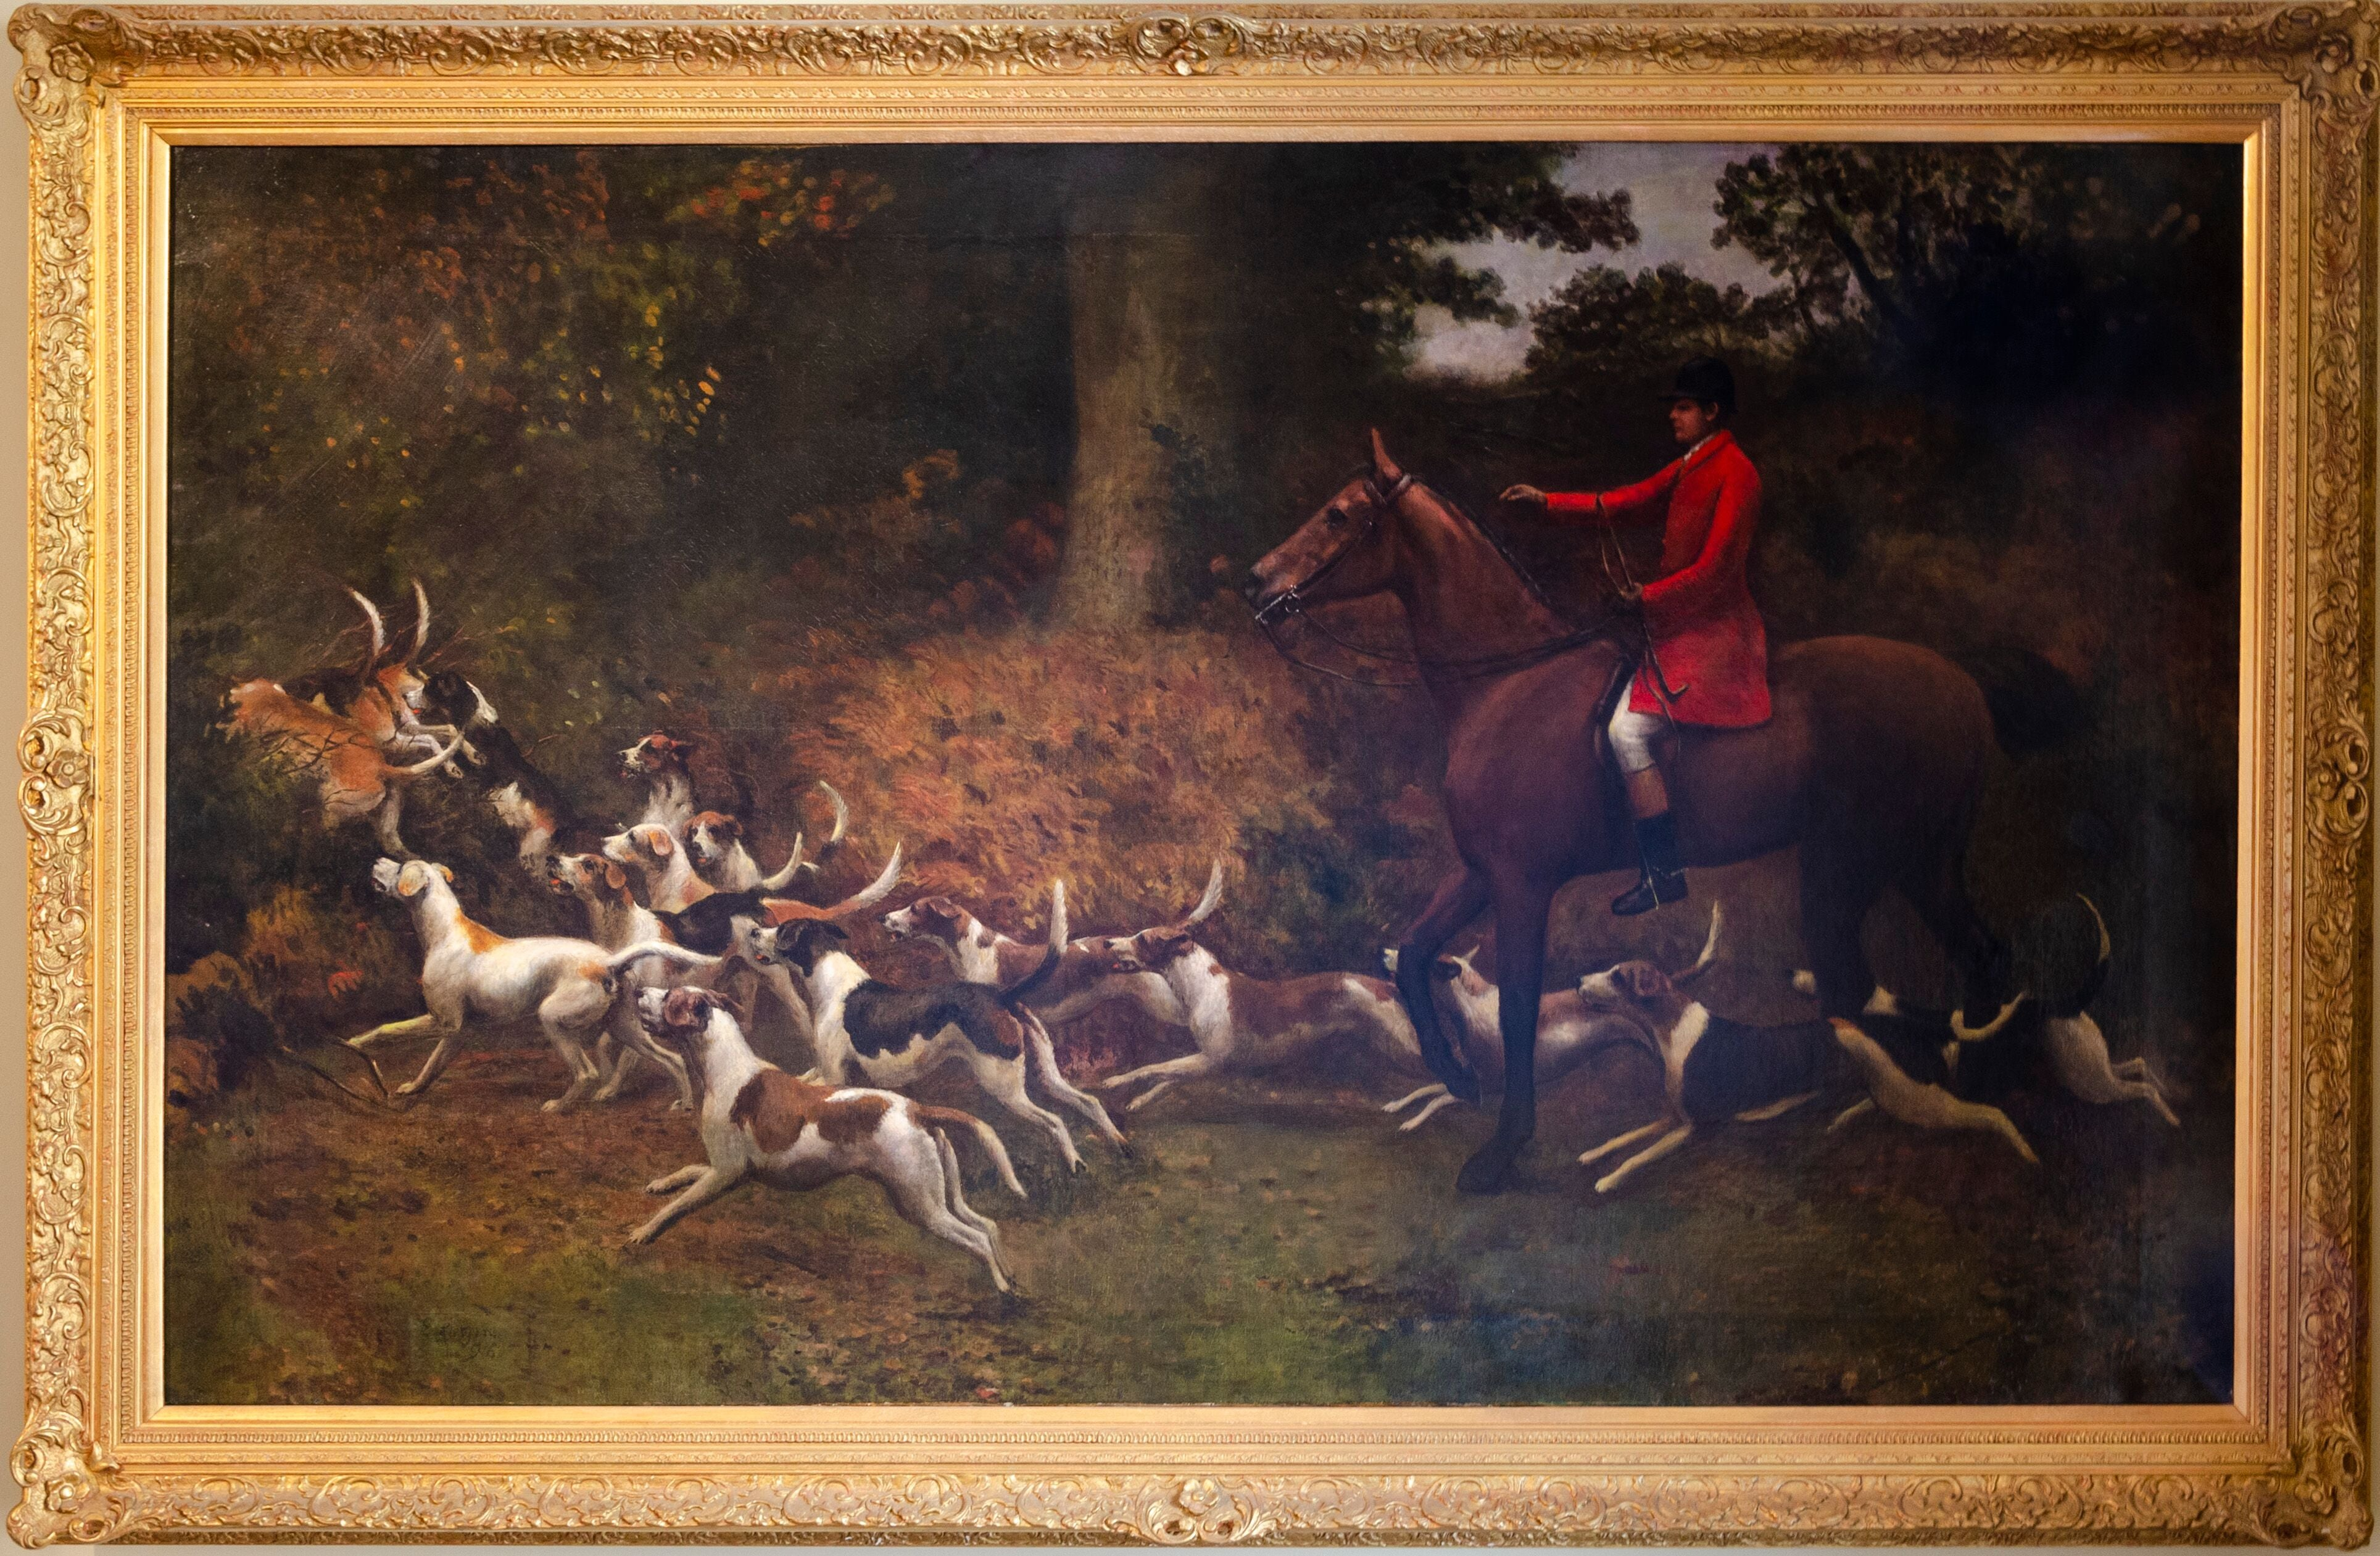 Enormous 19th Century British Sporting Horses & Hounds Hunting Oil Painting